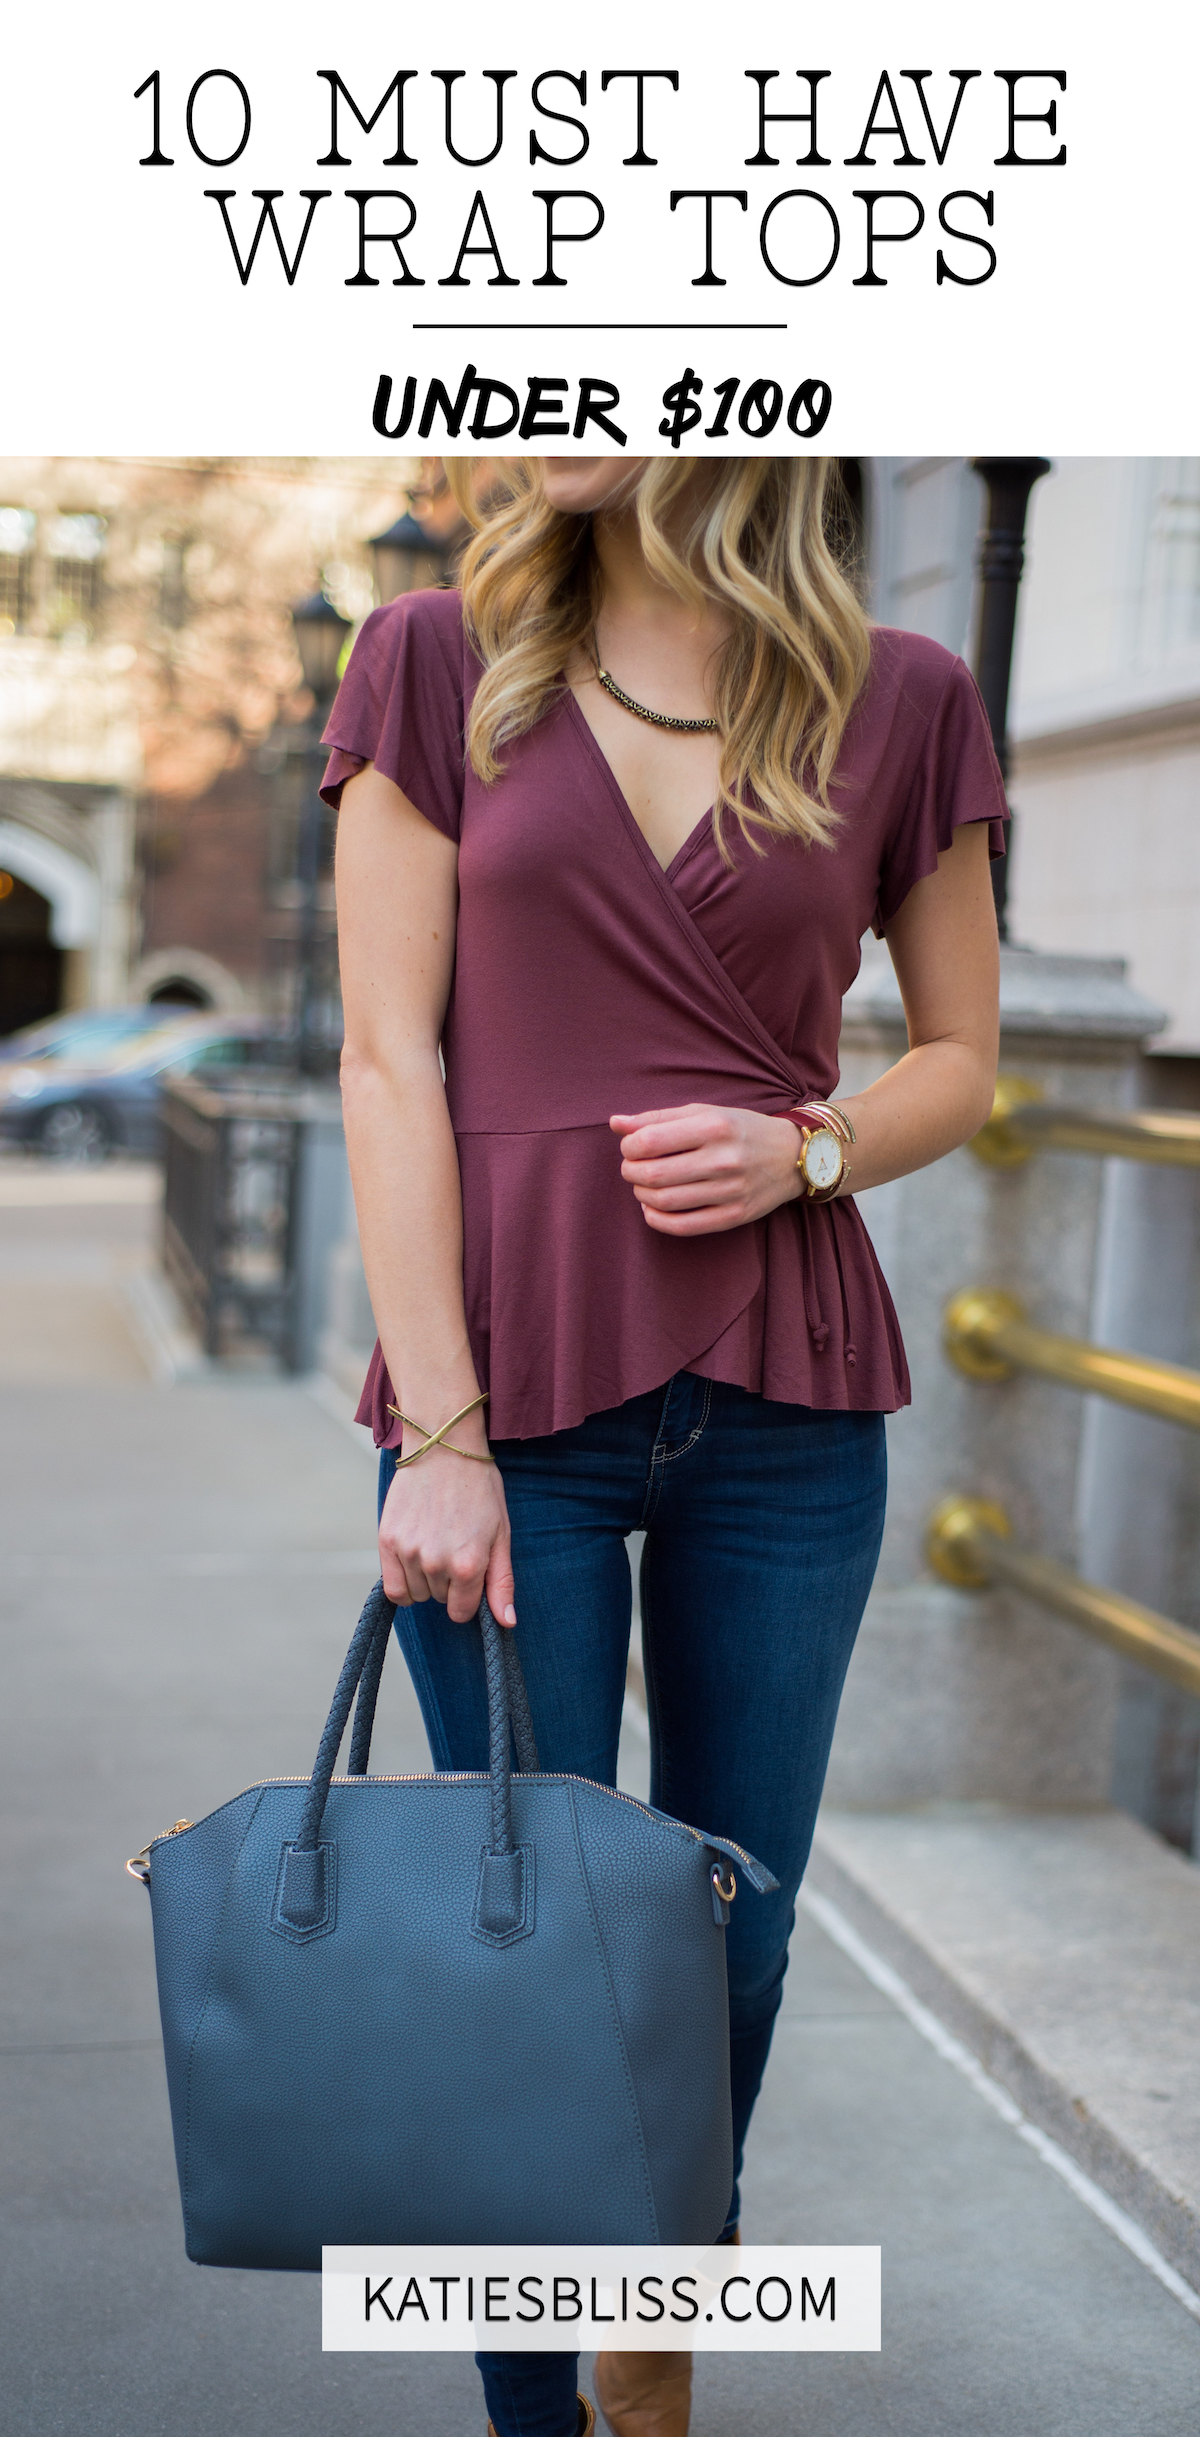 10 Wrap Tops For Spring Under $100